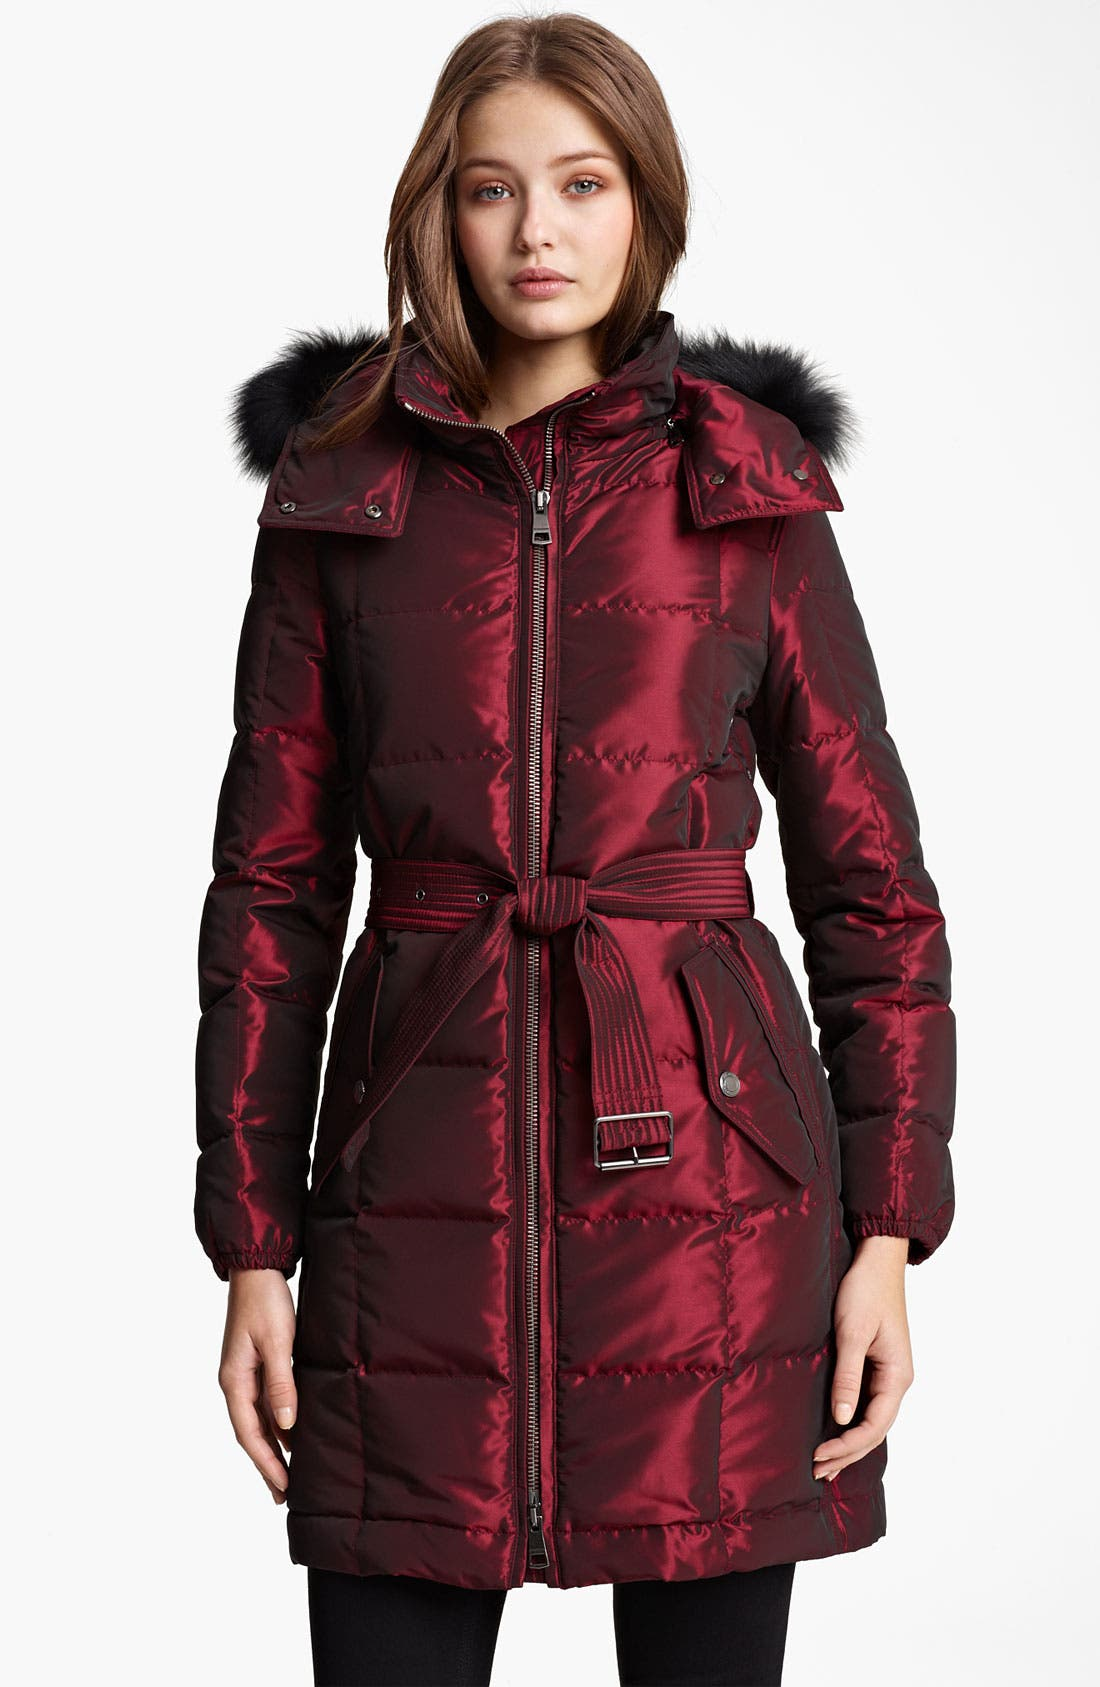 Alternate Image 1 Selected - Burberry Brit Quilted Genuine Fox Fur Trim Down Jacket (Online Exclusive)